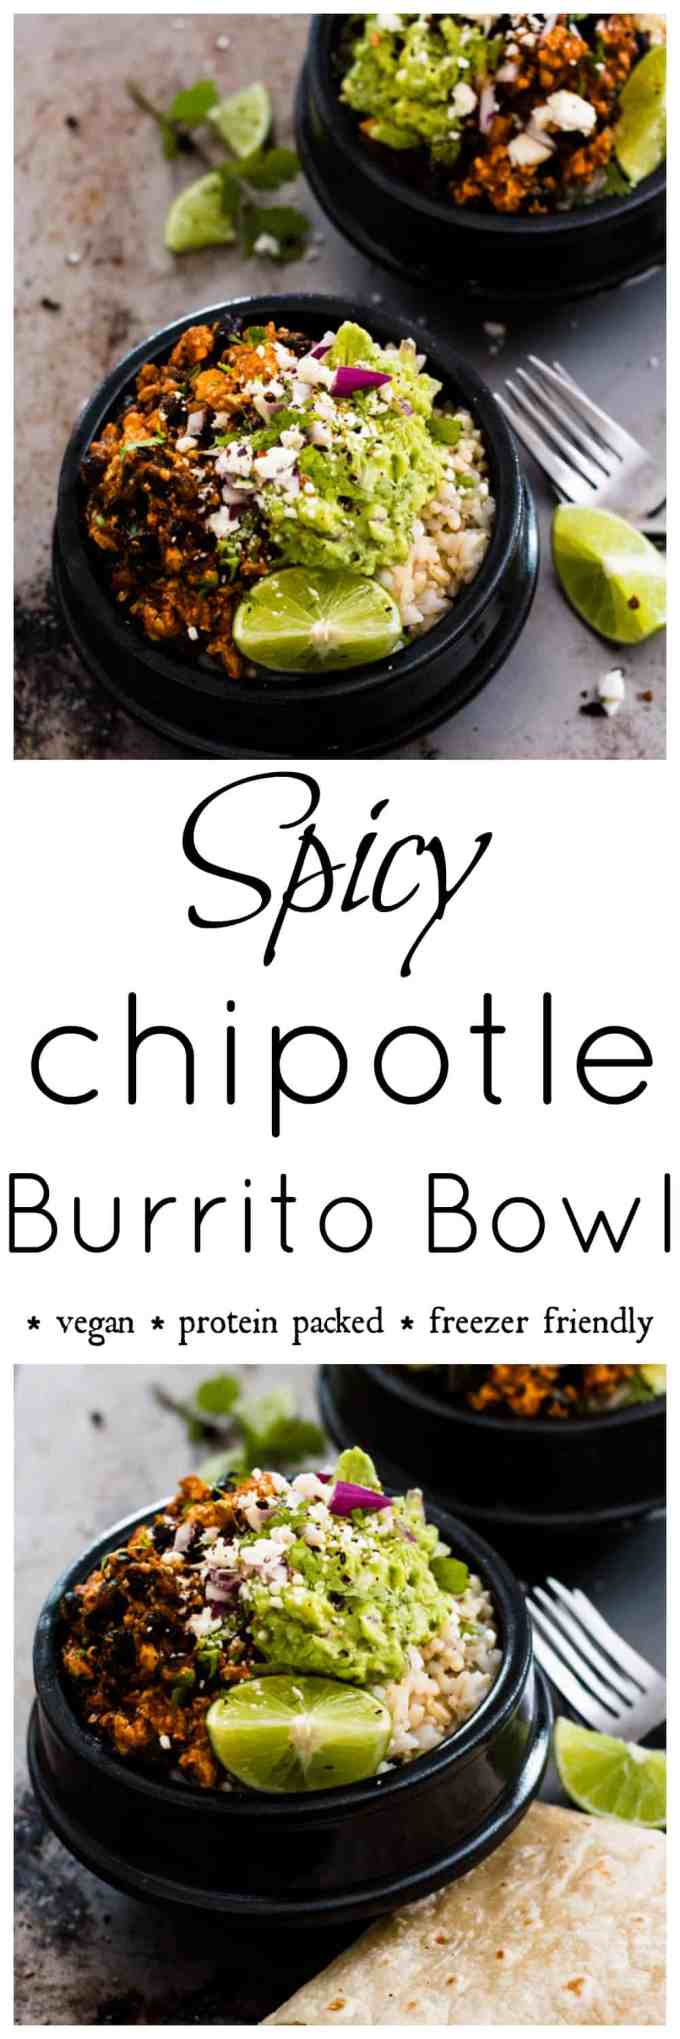 Spicy Chipotle Tofu Burrito Bowl. This delicious protein packed vegan bowl is easy to prep and freezer friendly.